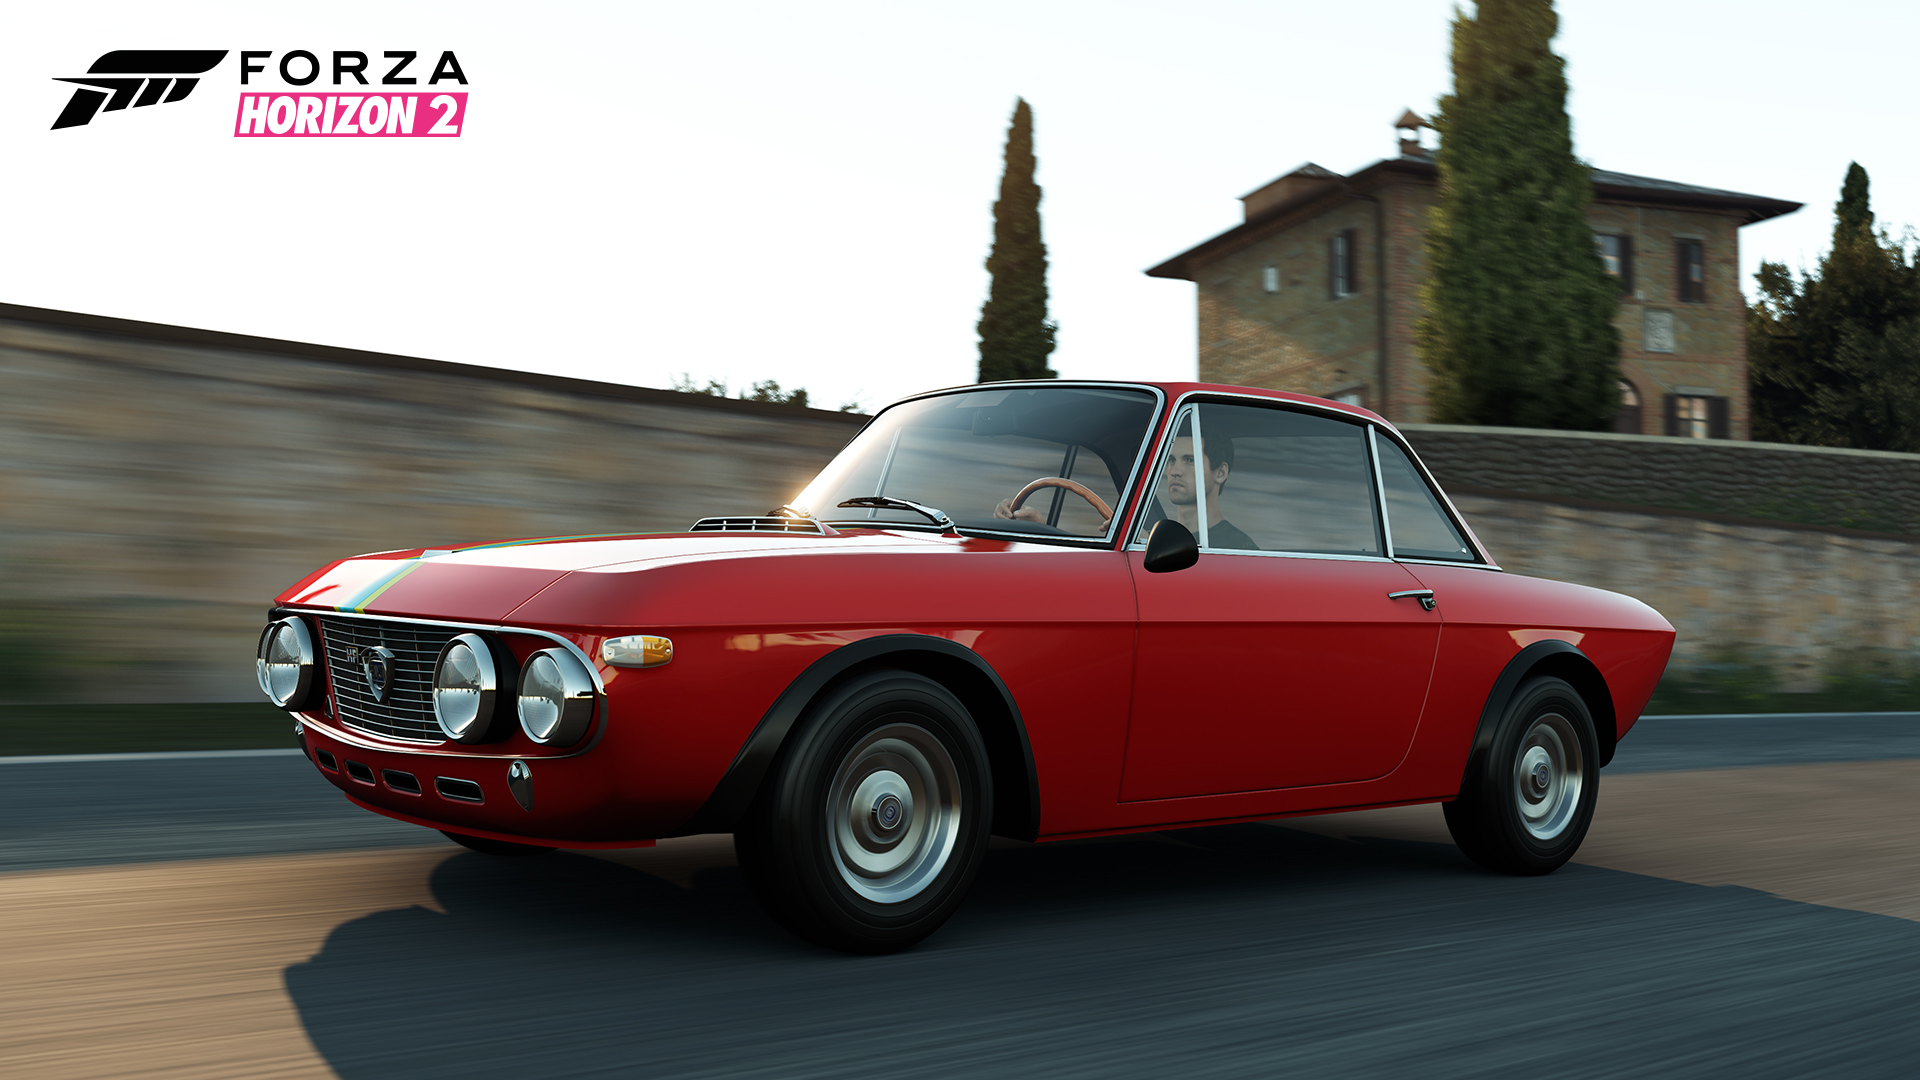 forza motorsport forza horizon 2 cars revealed. Black Bedroom Furniture Sets. Home Design Ideas